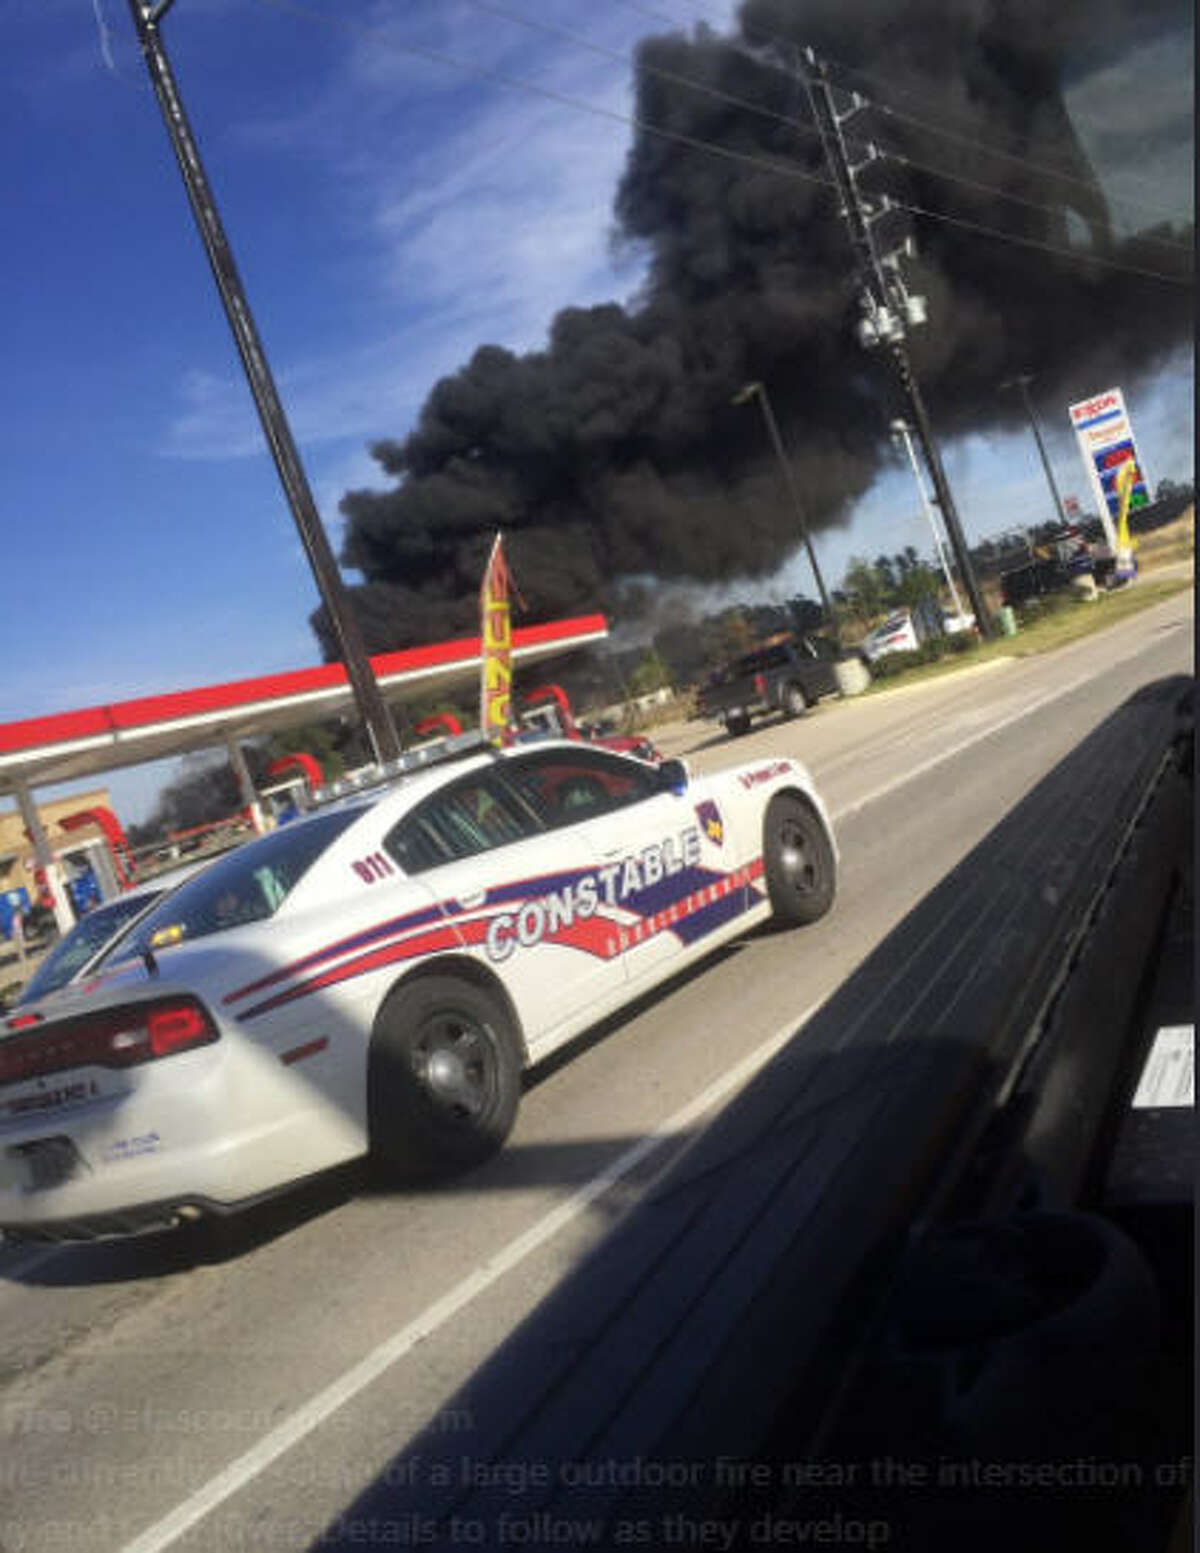 Atascocita Fire Department said they were responding to a large outdoor fire Sunday afternoon around 3 p.m.